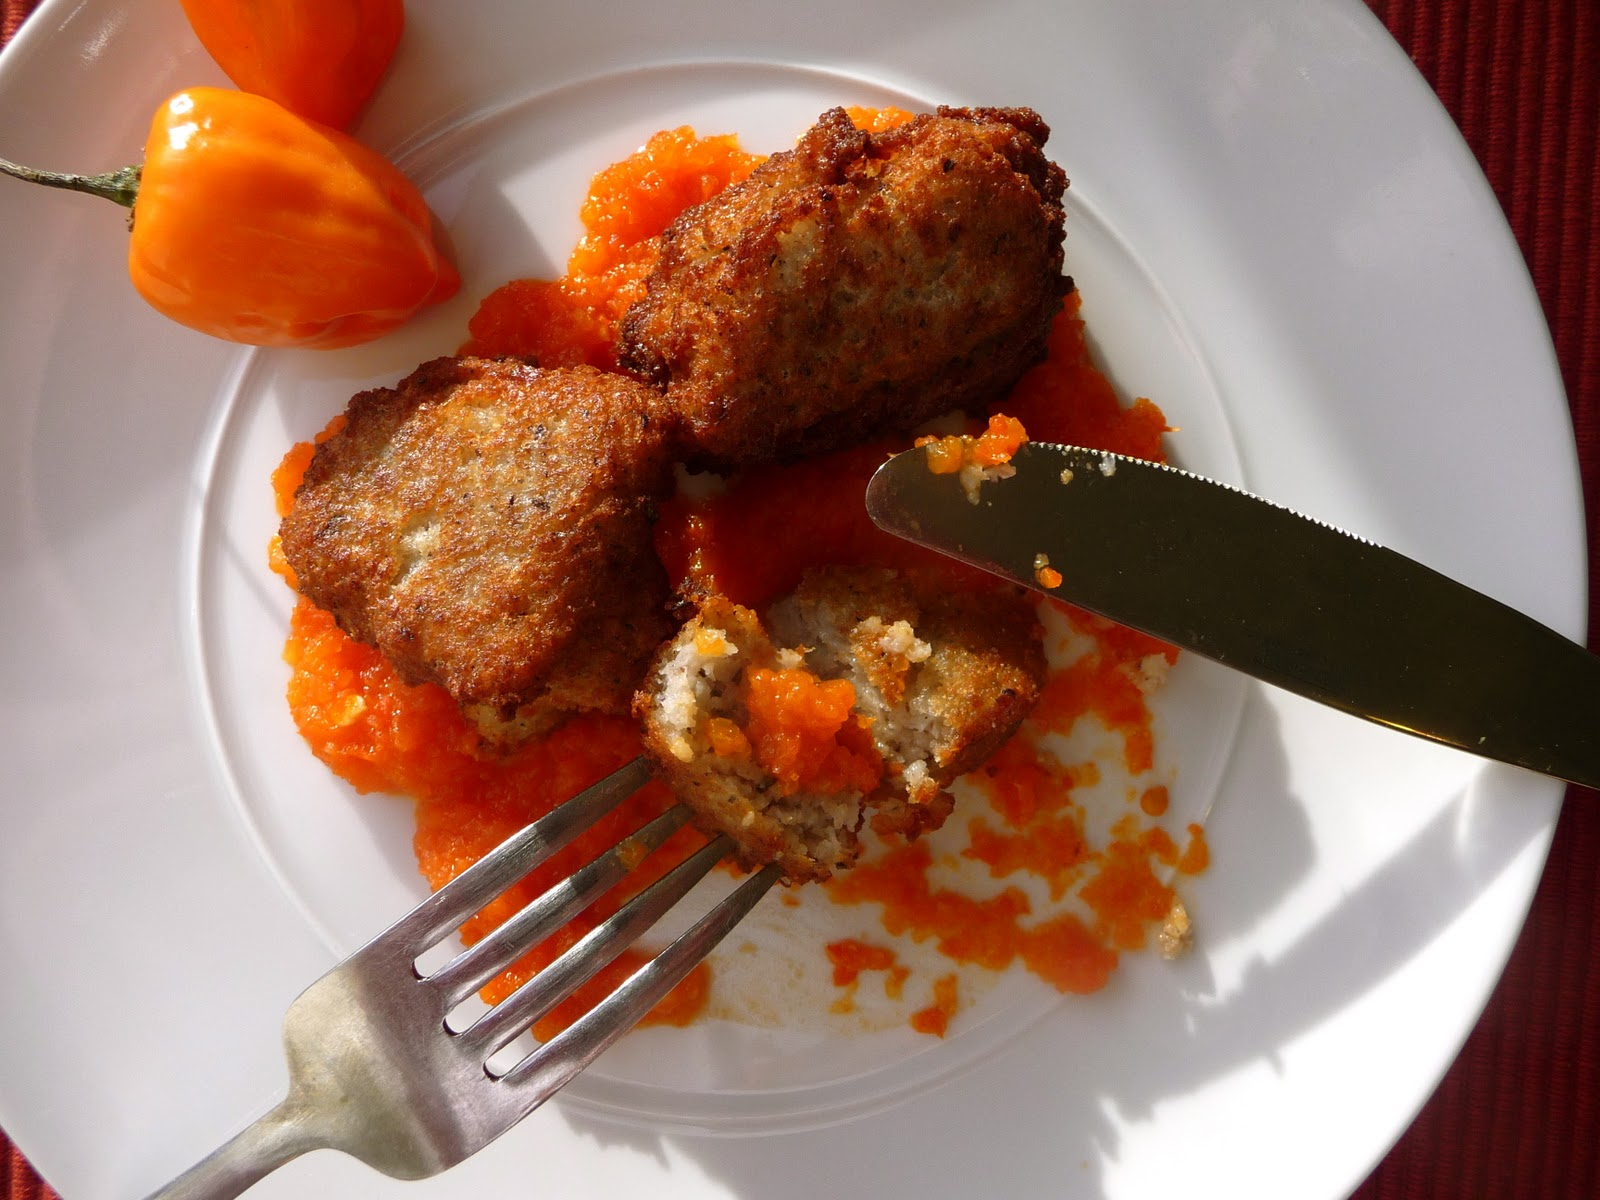 ... : Black Eyed Pea Fritters with Habanero and Red Pepper Relish